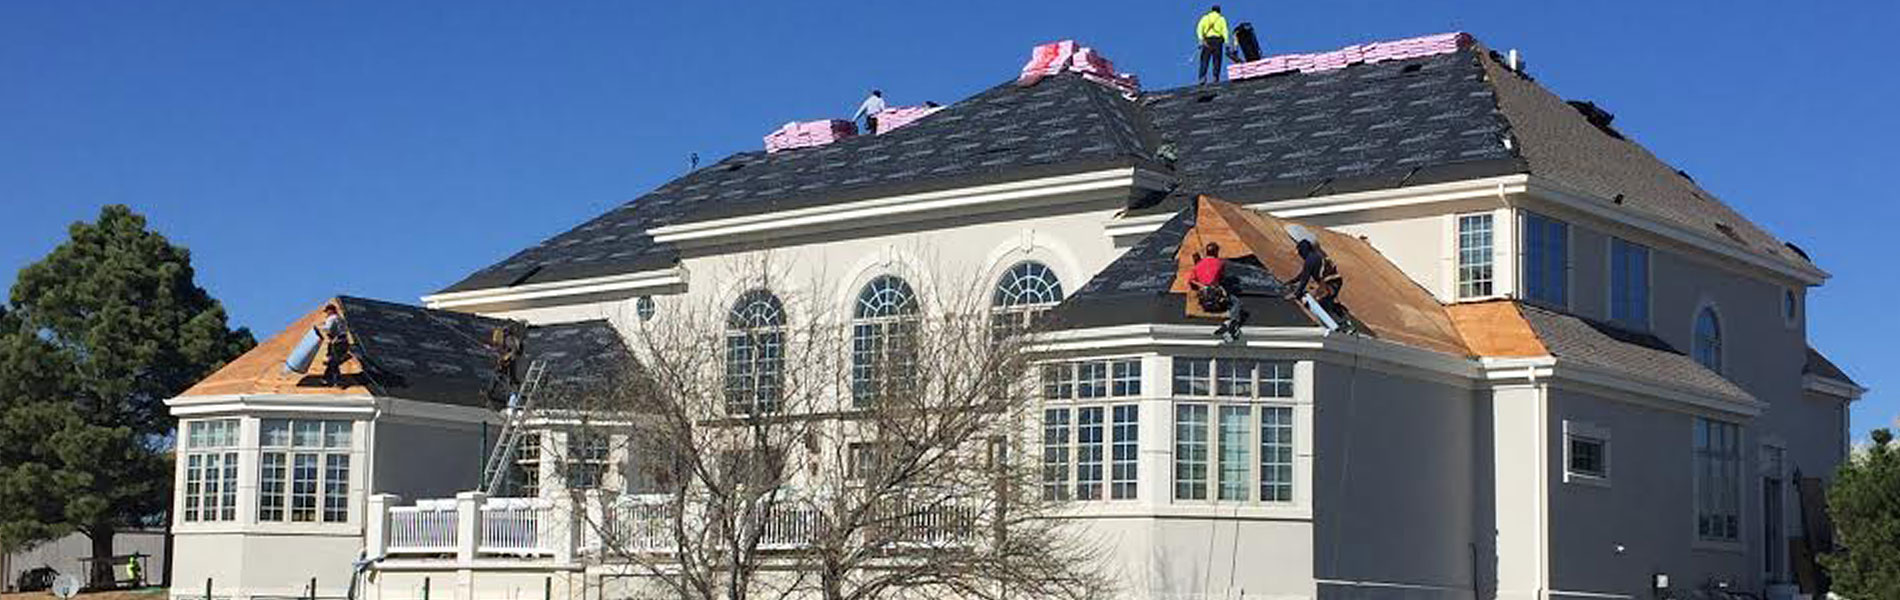 Roof Repair Installation Amp Maintenance Services In Aurora Co